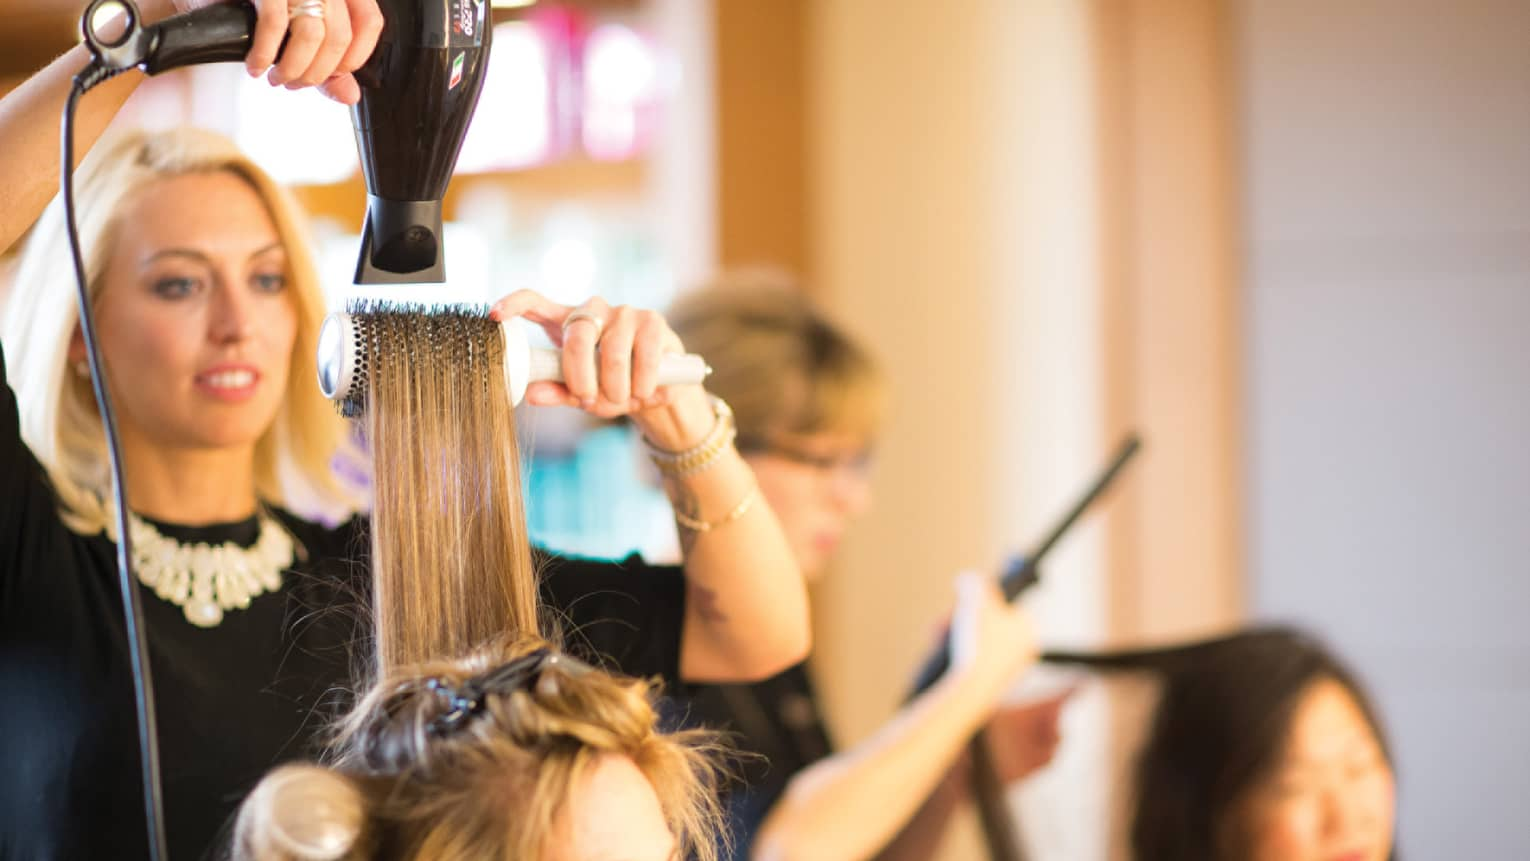 Hairstylist with hairdryer pulls back woman's hair with round brush in salon